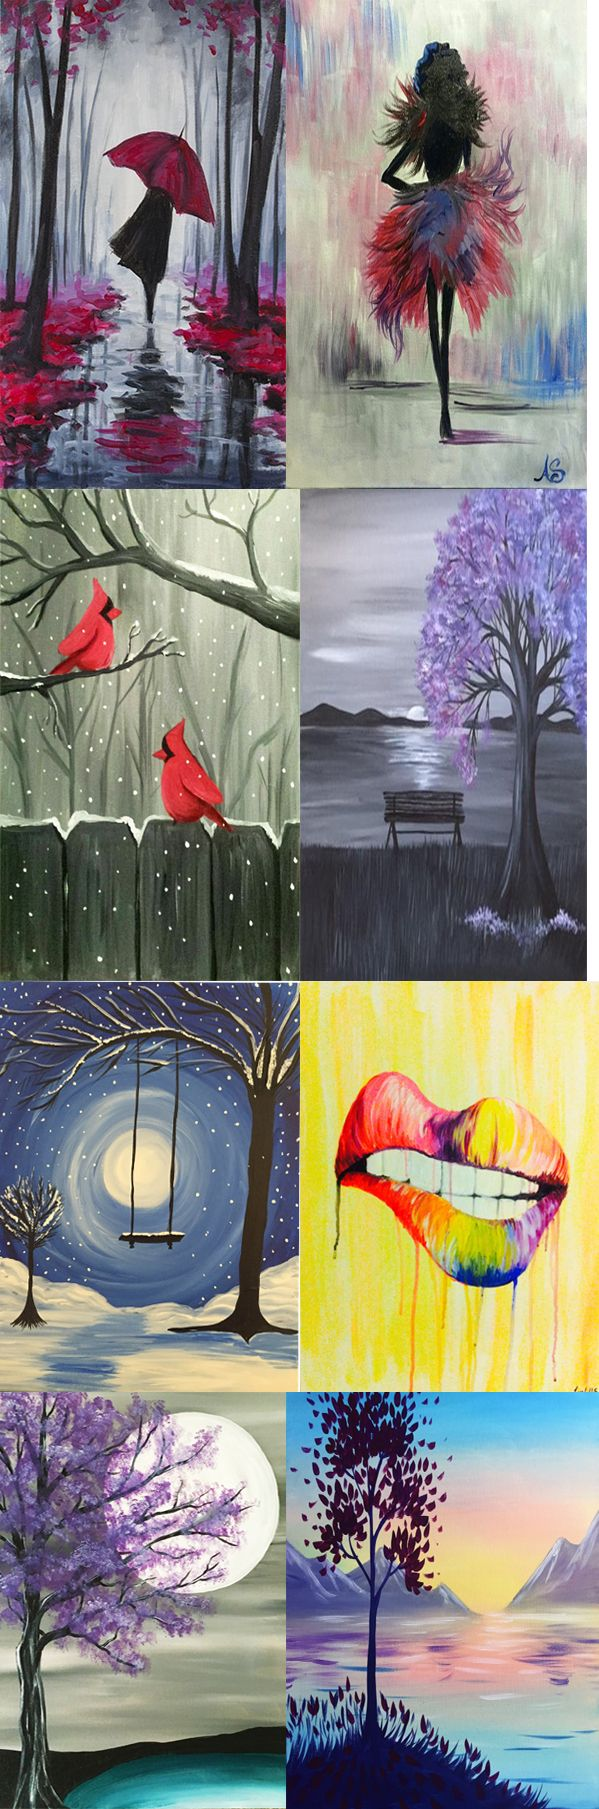 These are some of November's hottest Acrylic Paintings. Move over Paint Bar, Pinots Palette, and Muse Paint Bar. Paint Nite is #1 when it comes down to Paint and Sip!  These DIY Canvas Paintings are some of the most beautiful you will ever see. No Experience? No problem! Our  artist will give painting tutorials guiding you step by step to create some awesome canvas paintings. We provide all of the materials...we use only the best acrylic paint for our wine and canvas